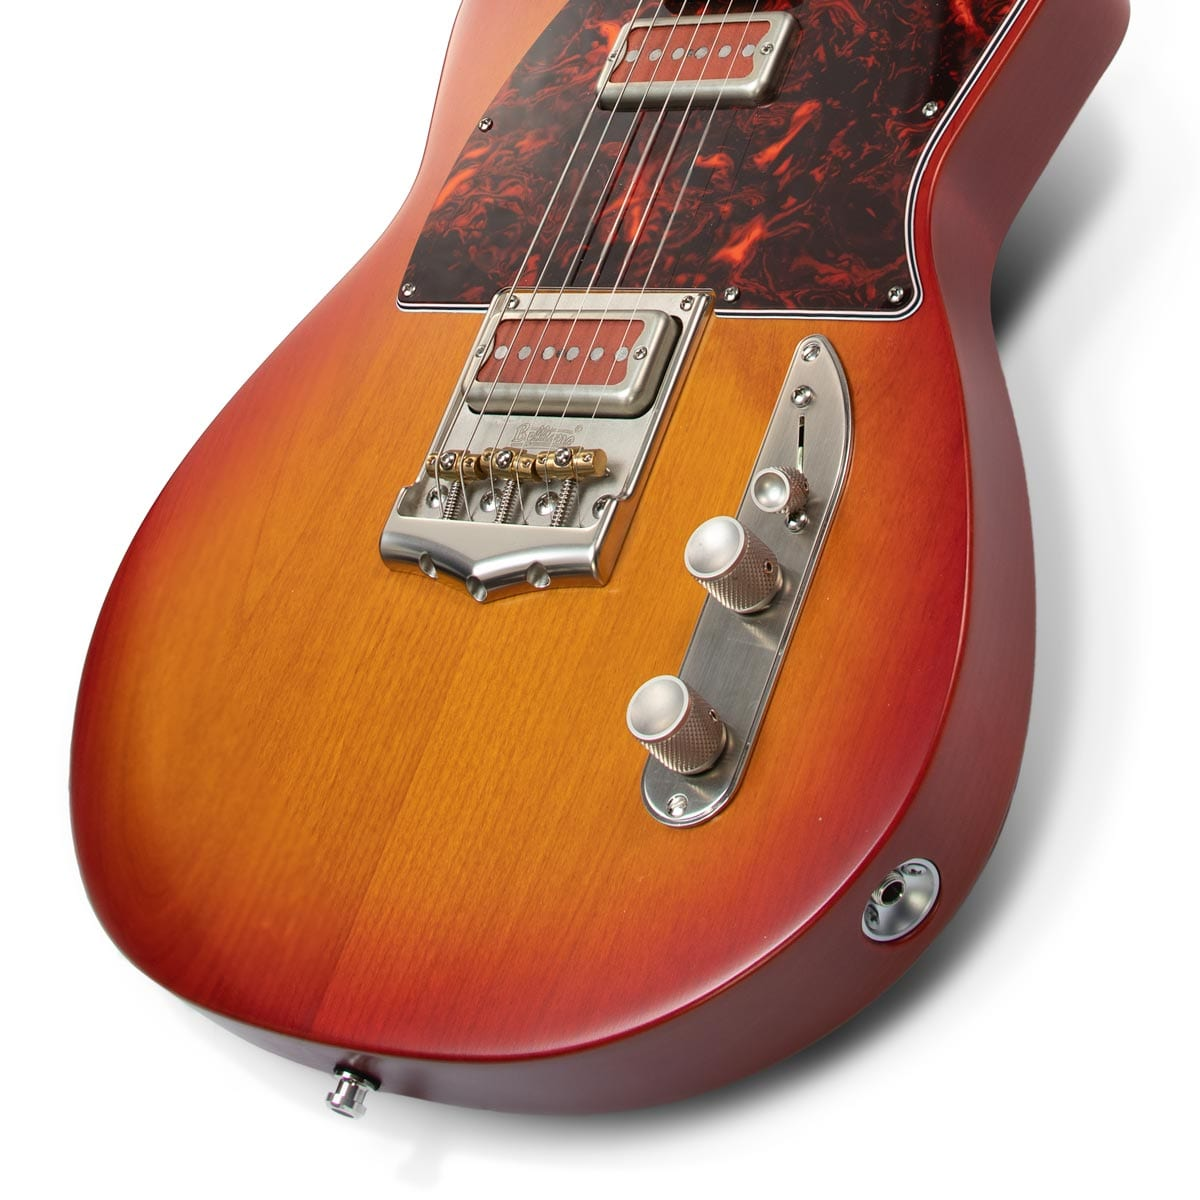 FinishFormat-Belltone-Guitars